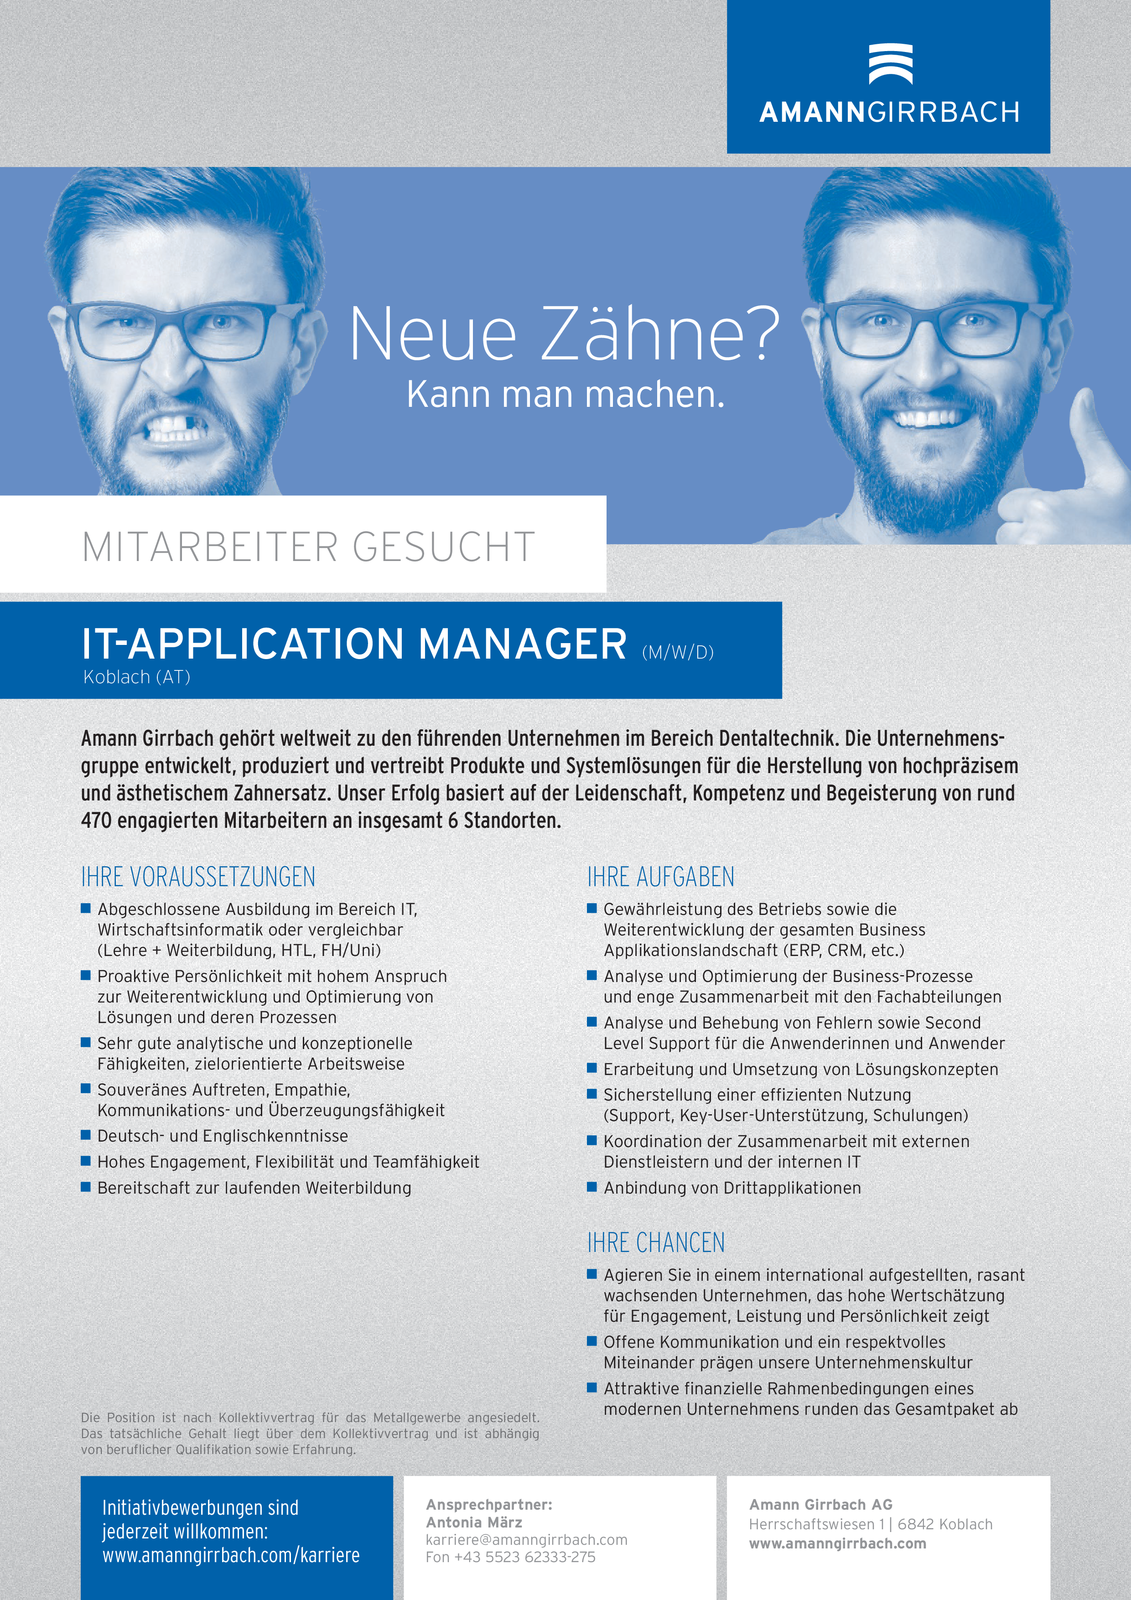 IT-APPLICATION MANAGER (m/w/d)